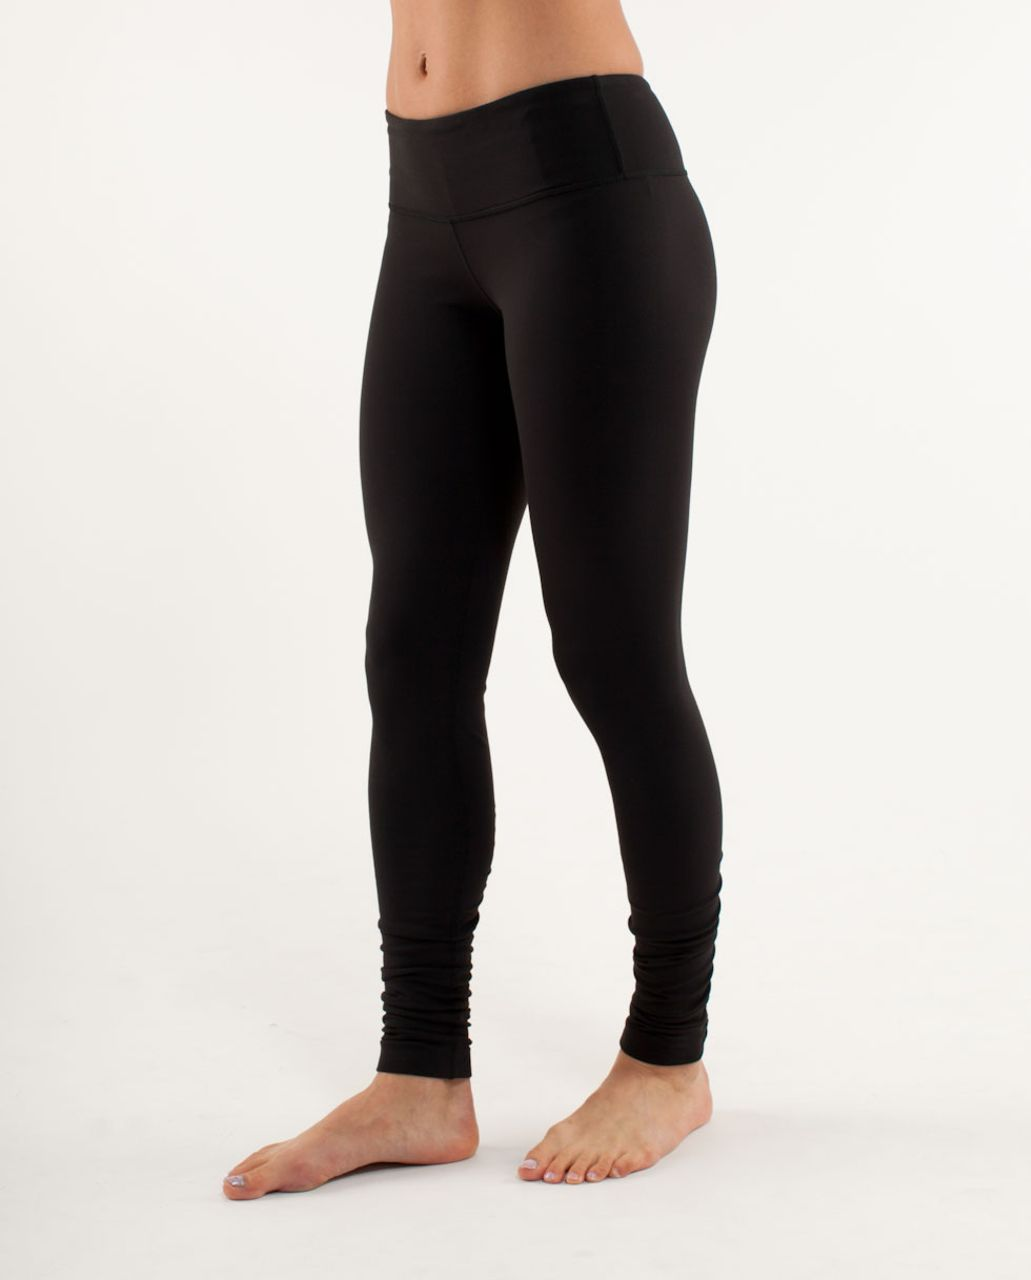 Lululemon Wunder Under Pant *Gathers - Black